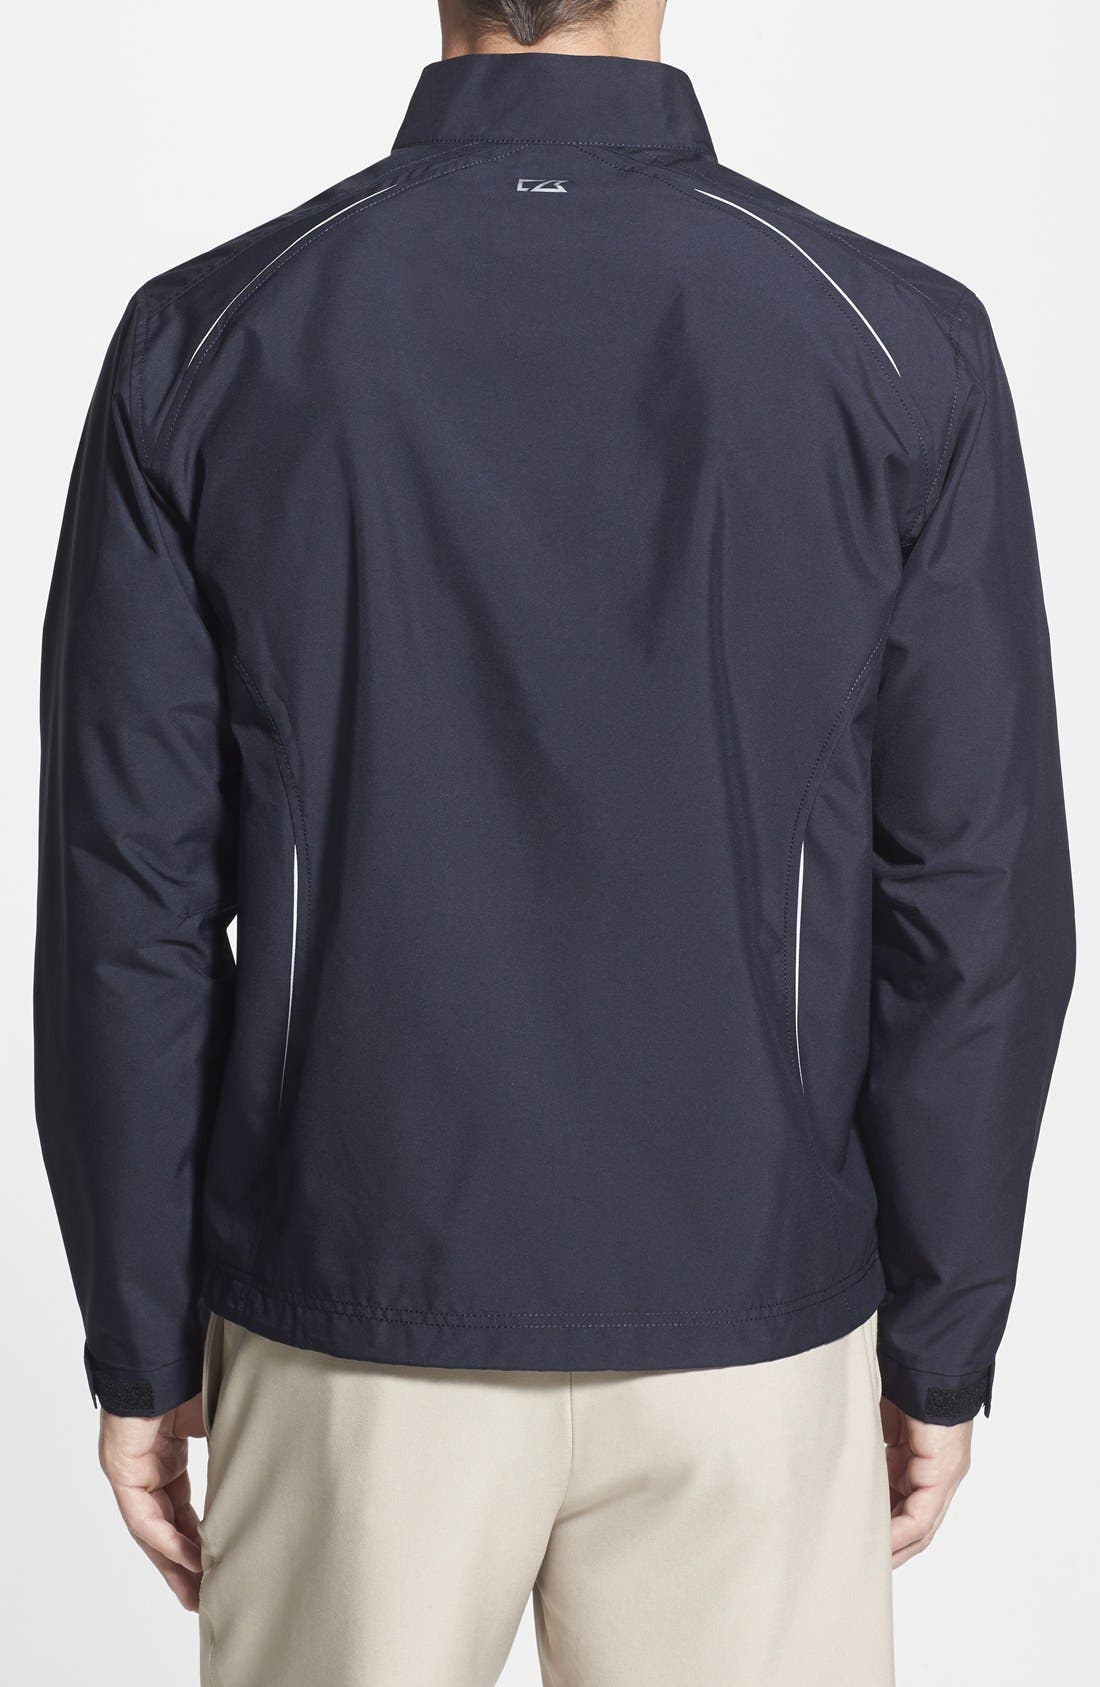 San Diego Chargers - Beacon WeatherTec Wind & Water Resistant Jacket,                             Alternate thumbnail 2, color,                             Navy Blue